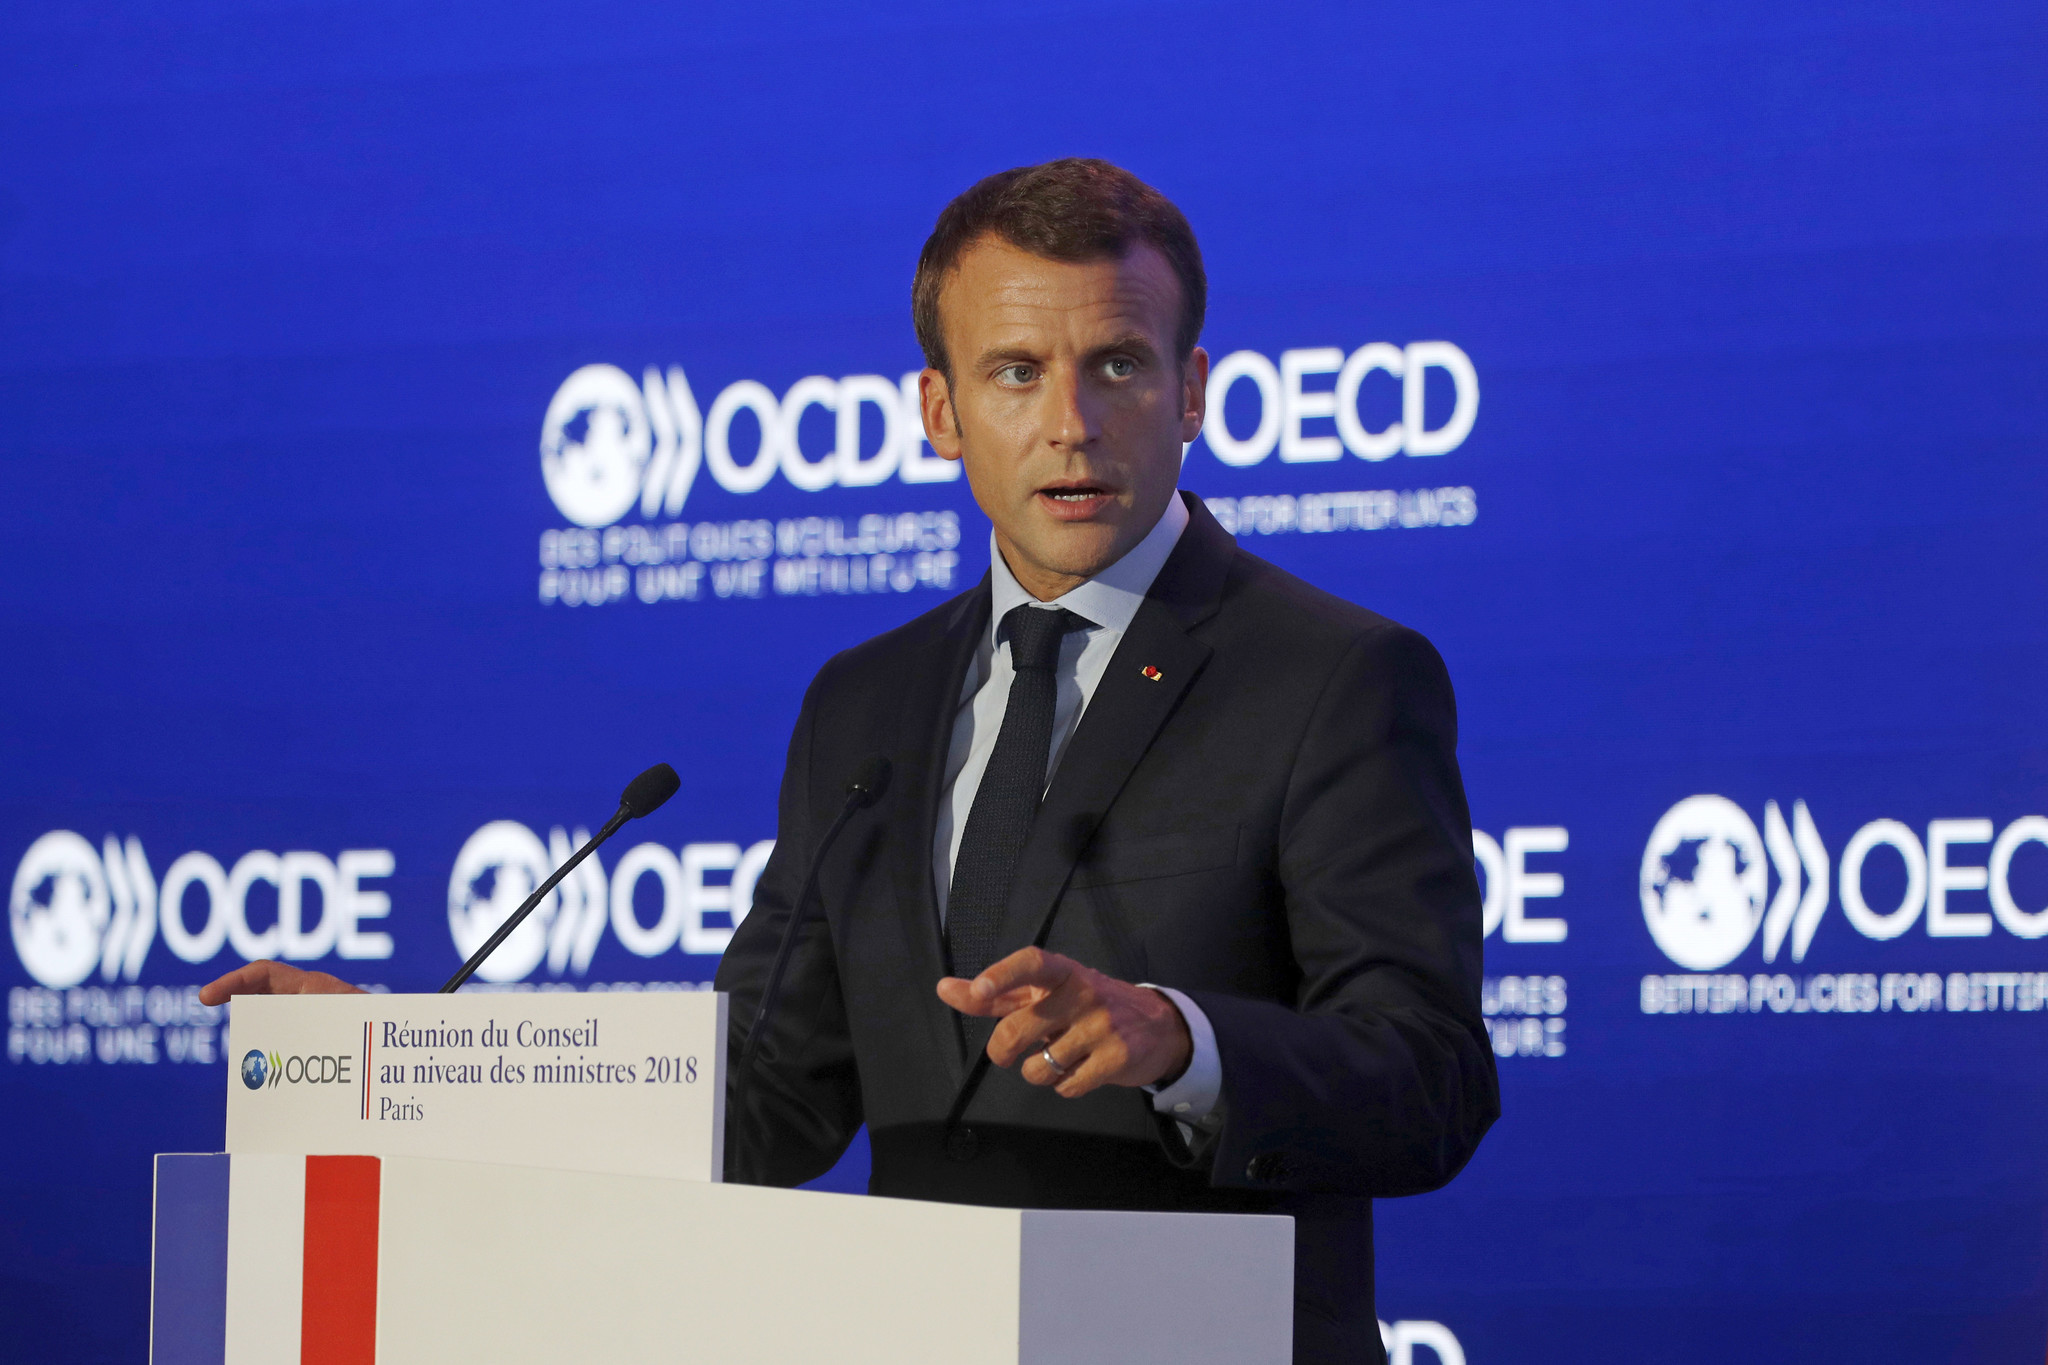 6 arrested in suspected plot to attack French President Emmanuel Macron